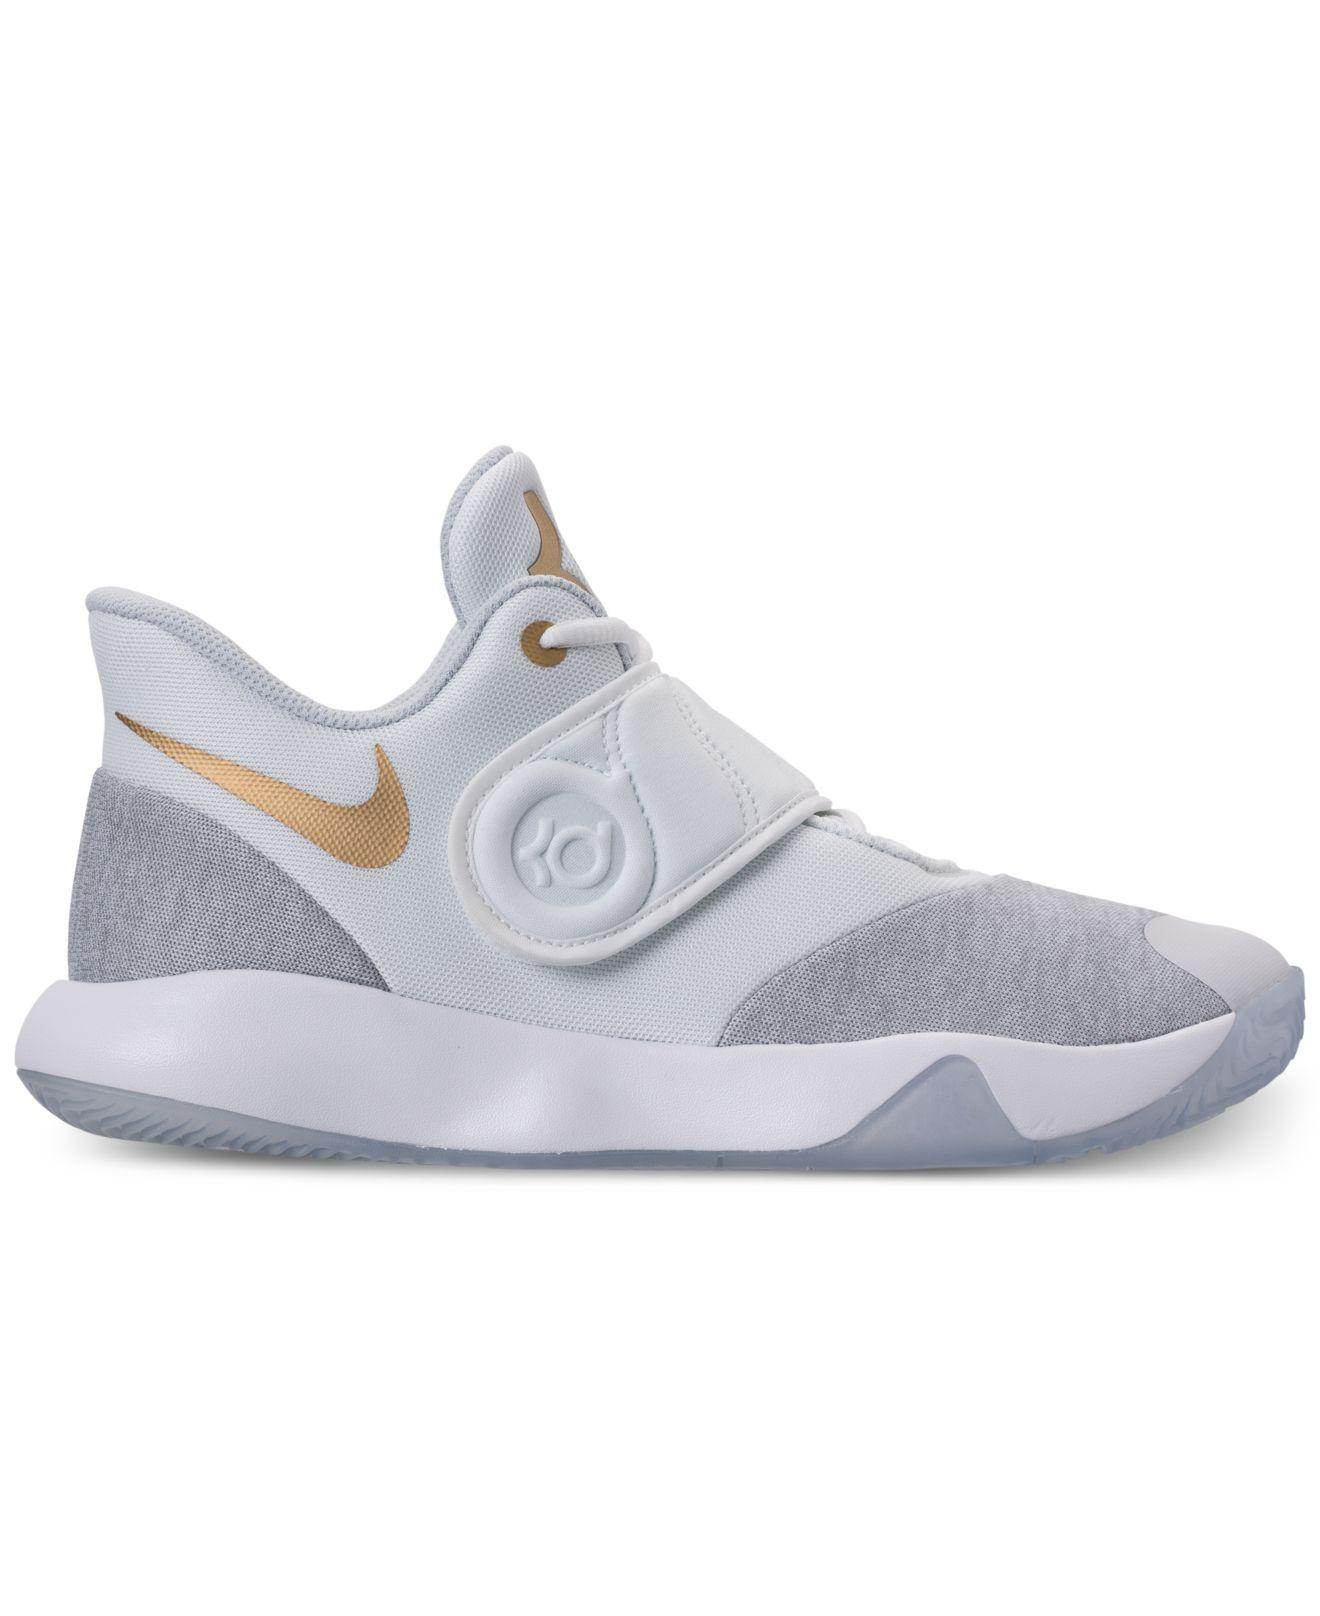 e5063a4fdf0a28 ... france lyst nike kd trey 5 vi basketball sneakers from finish line in  gray for men ...